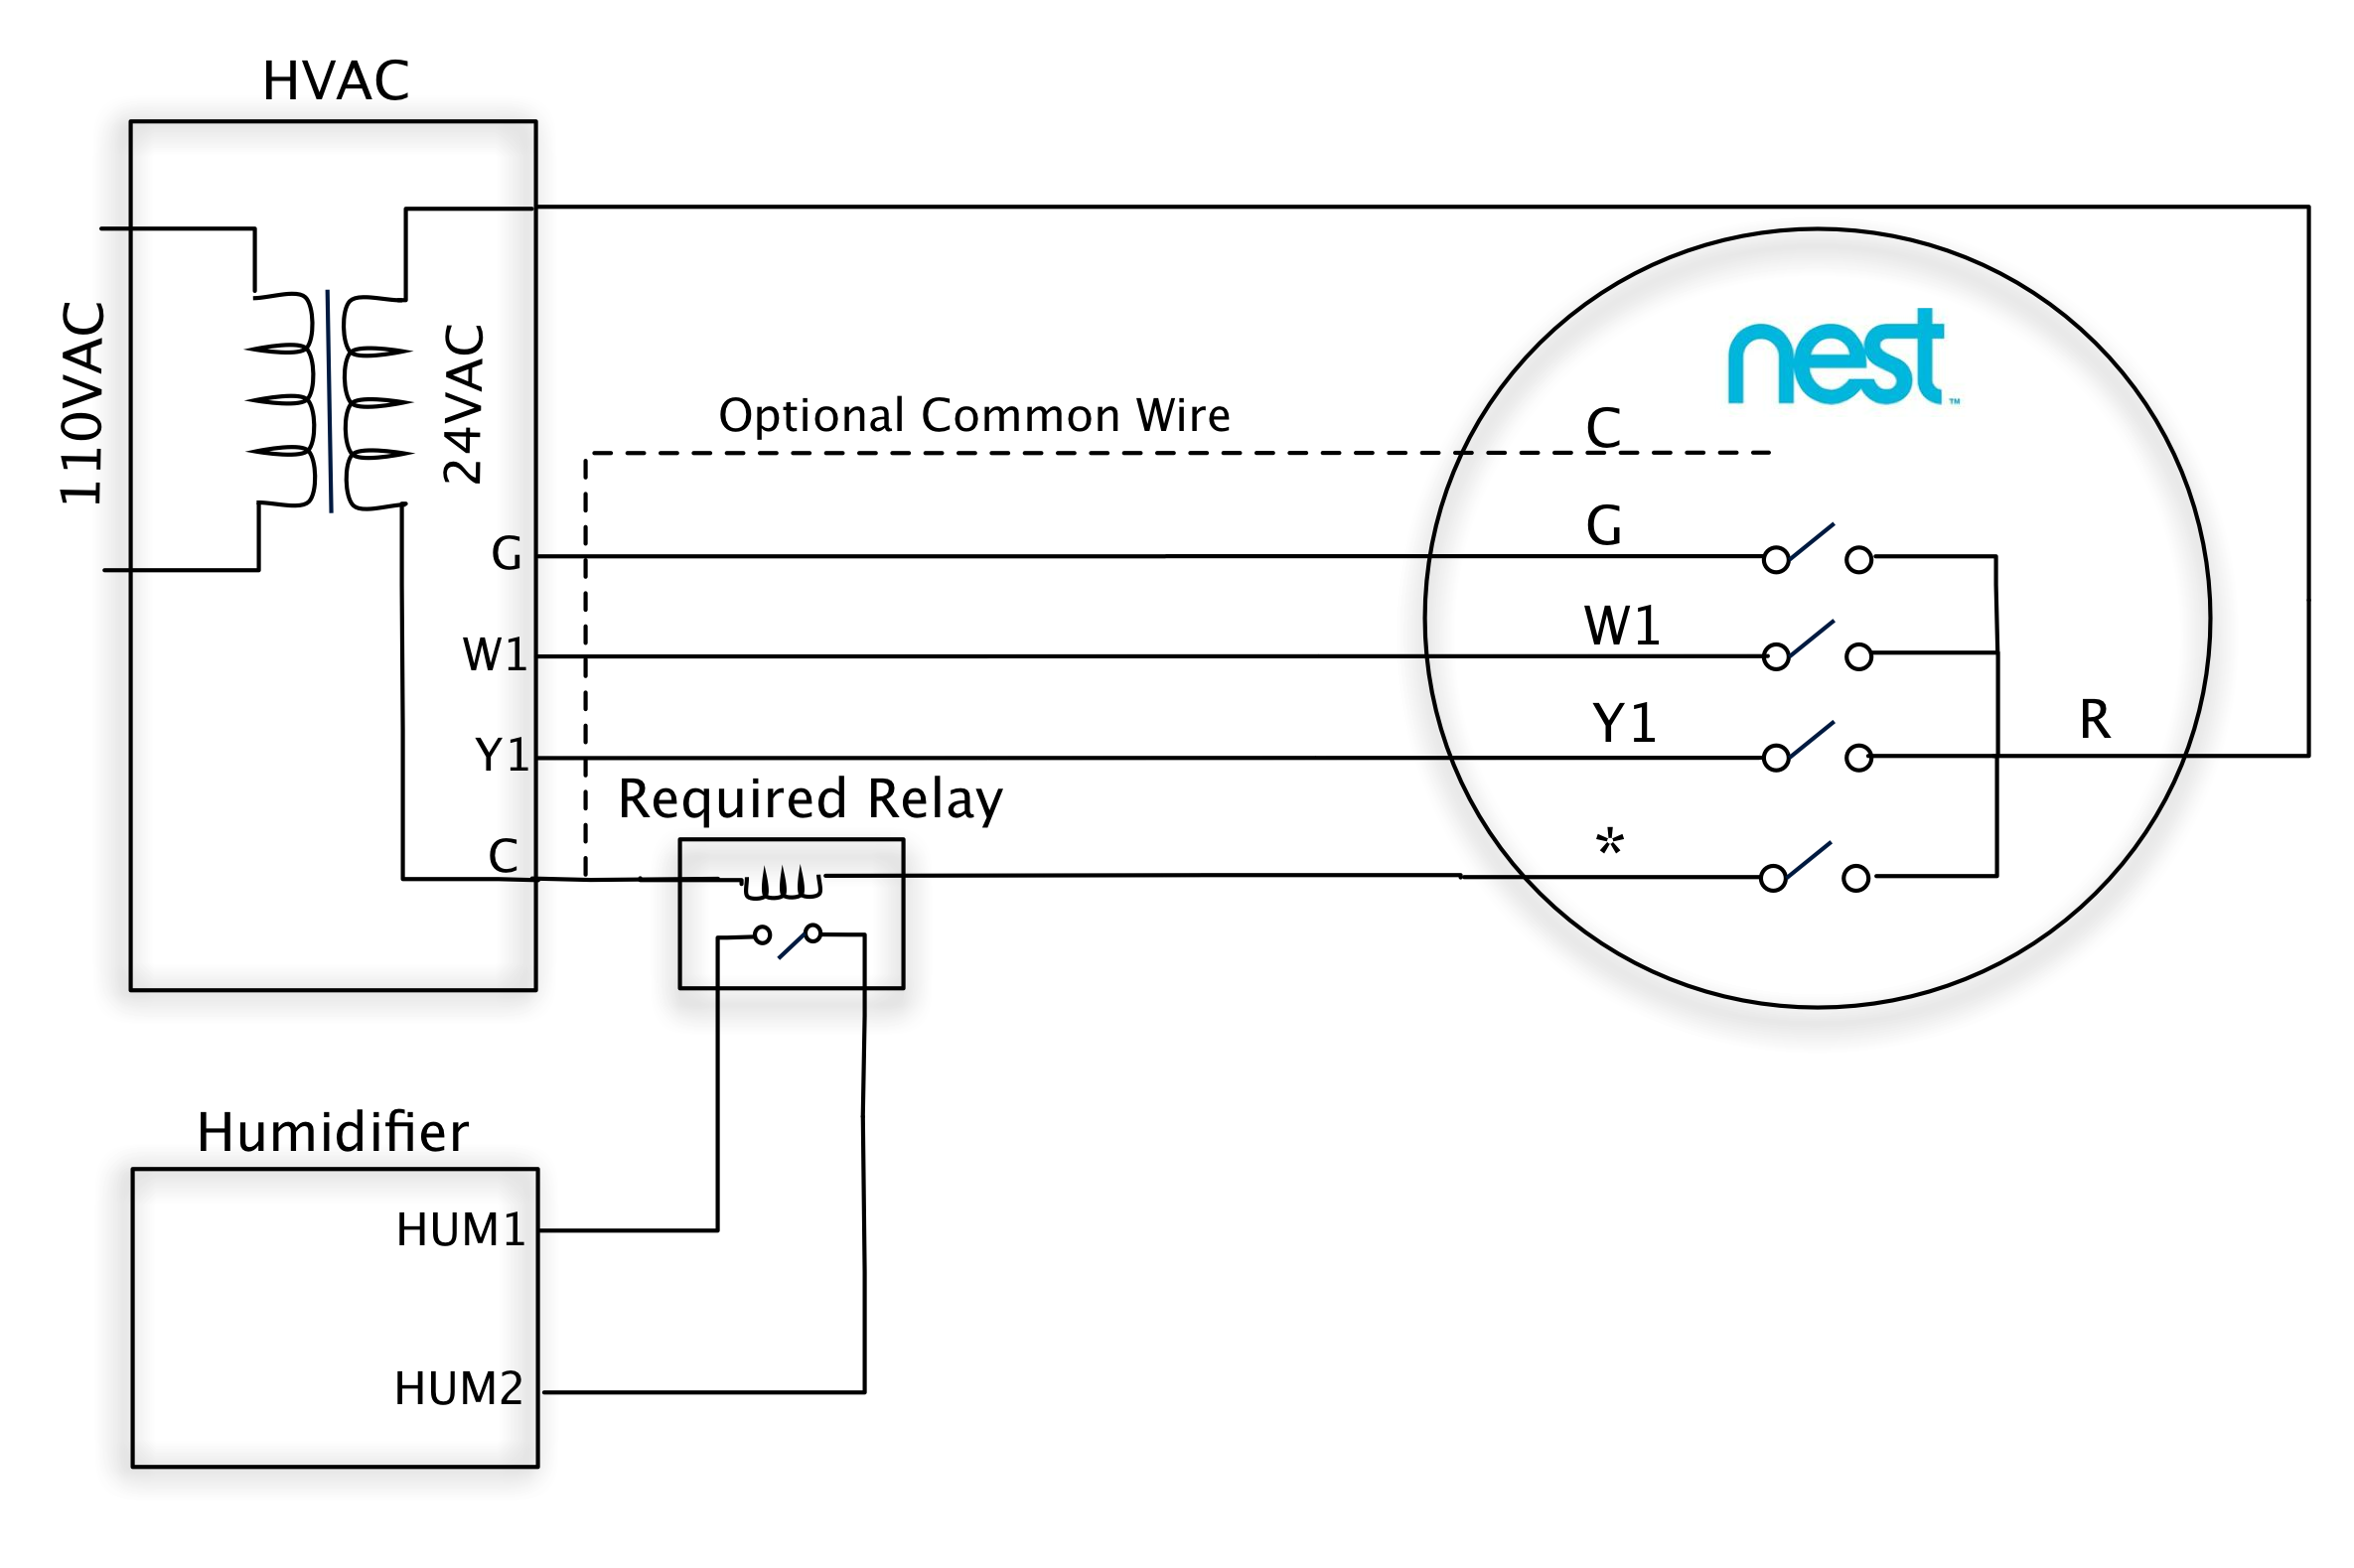 Nest Thermostat Wiring Diagram Basement A/C System